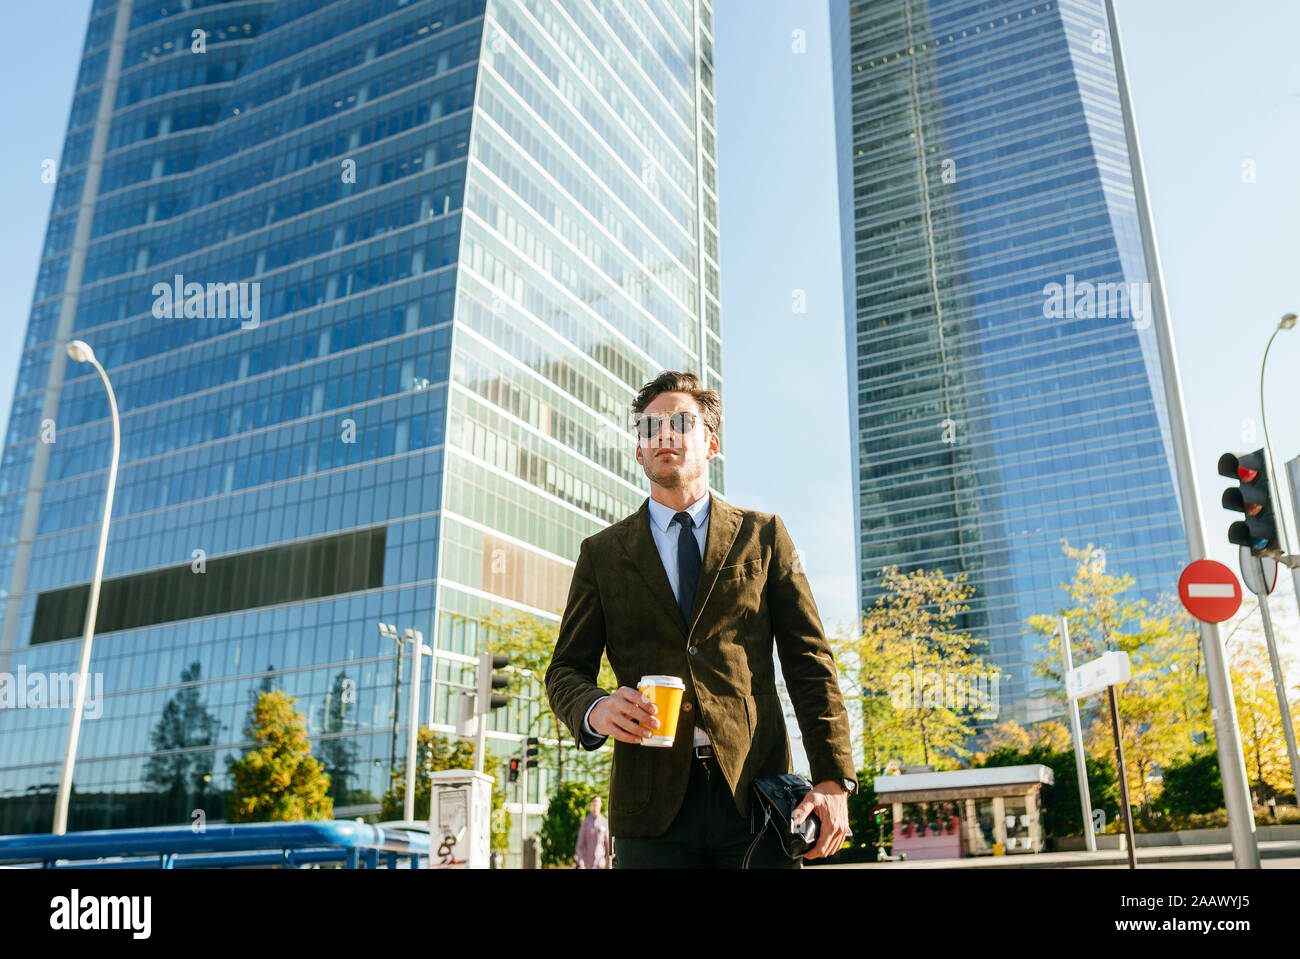 Confident businessman walking in urban business district, Madrid, Spain Stock Photo